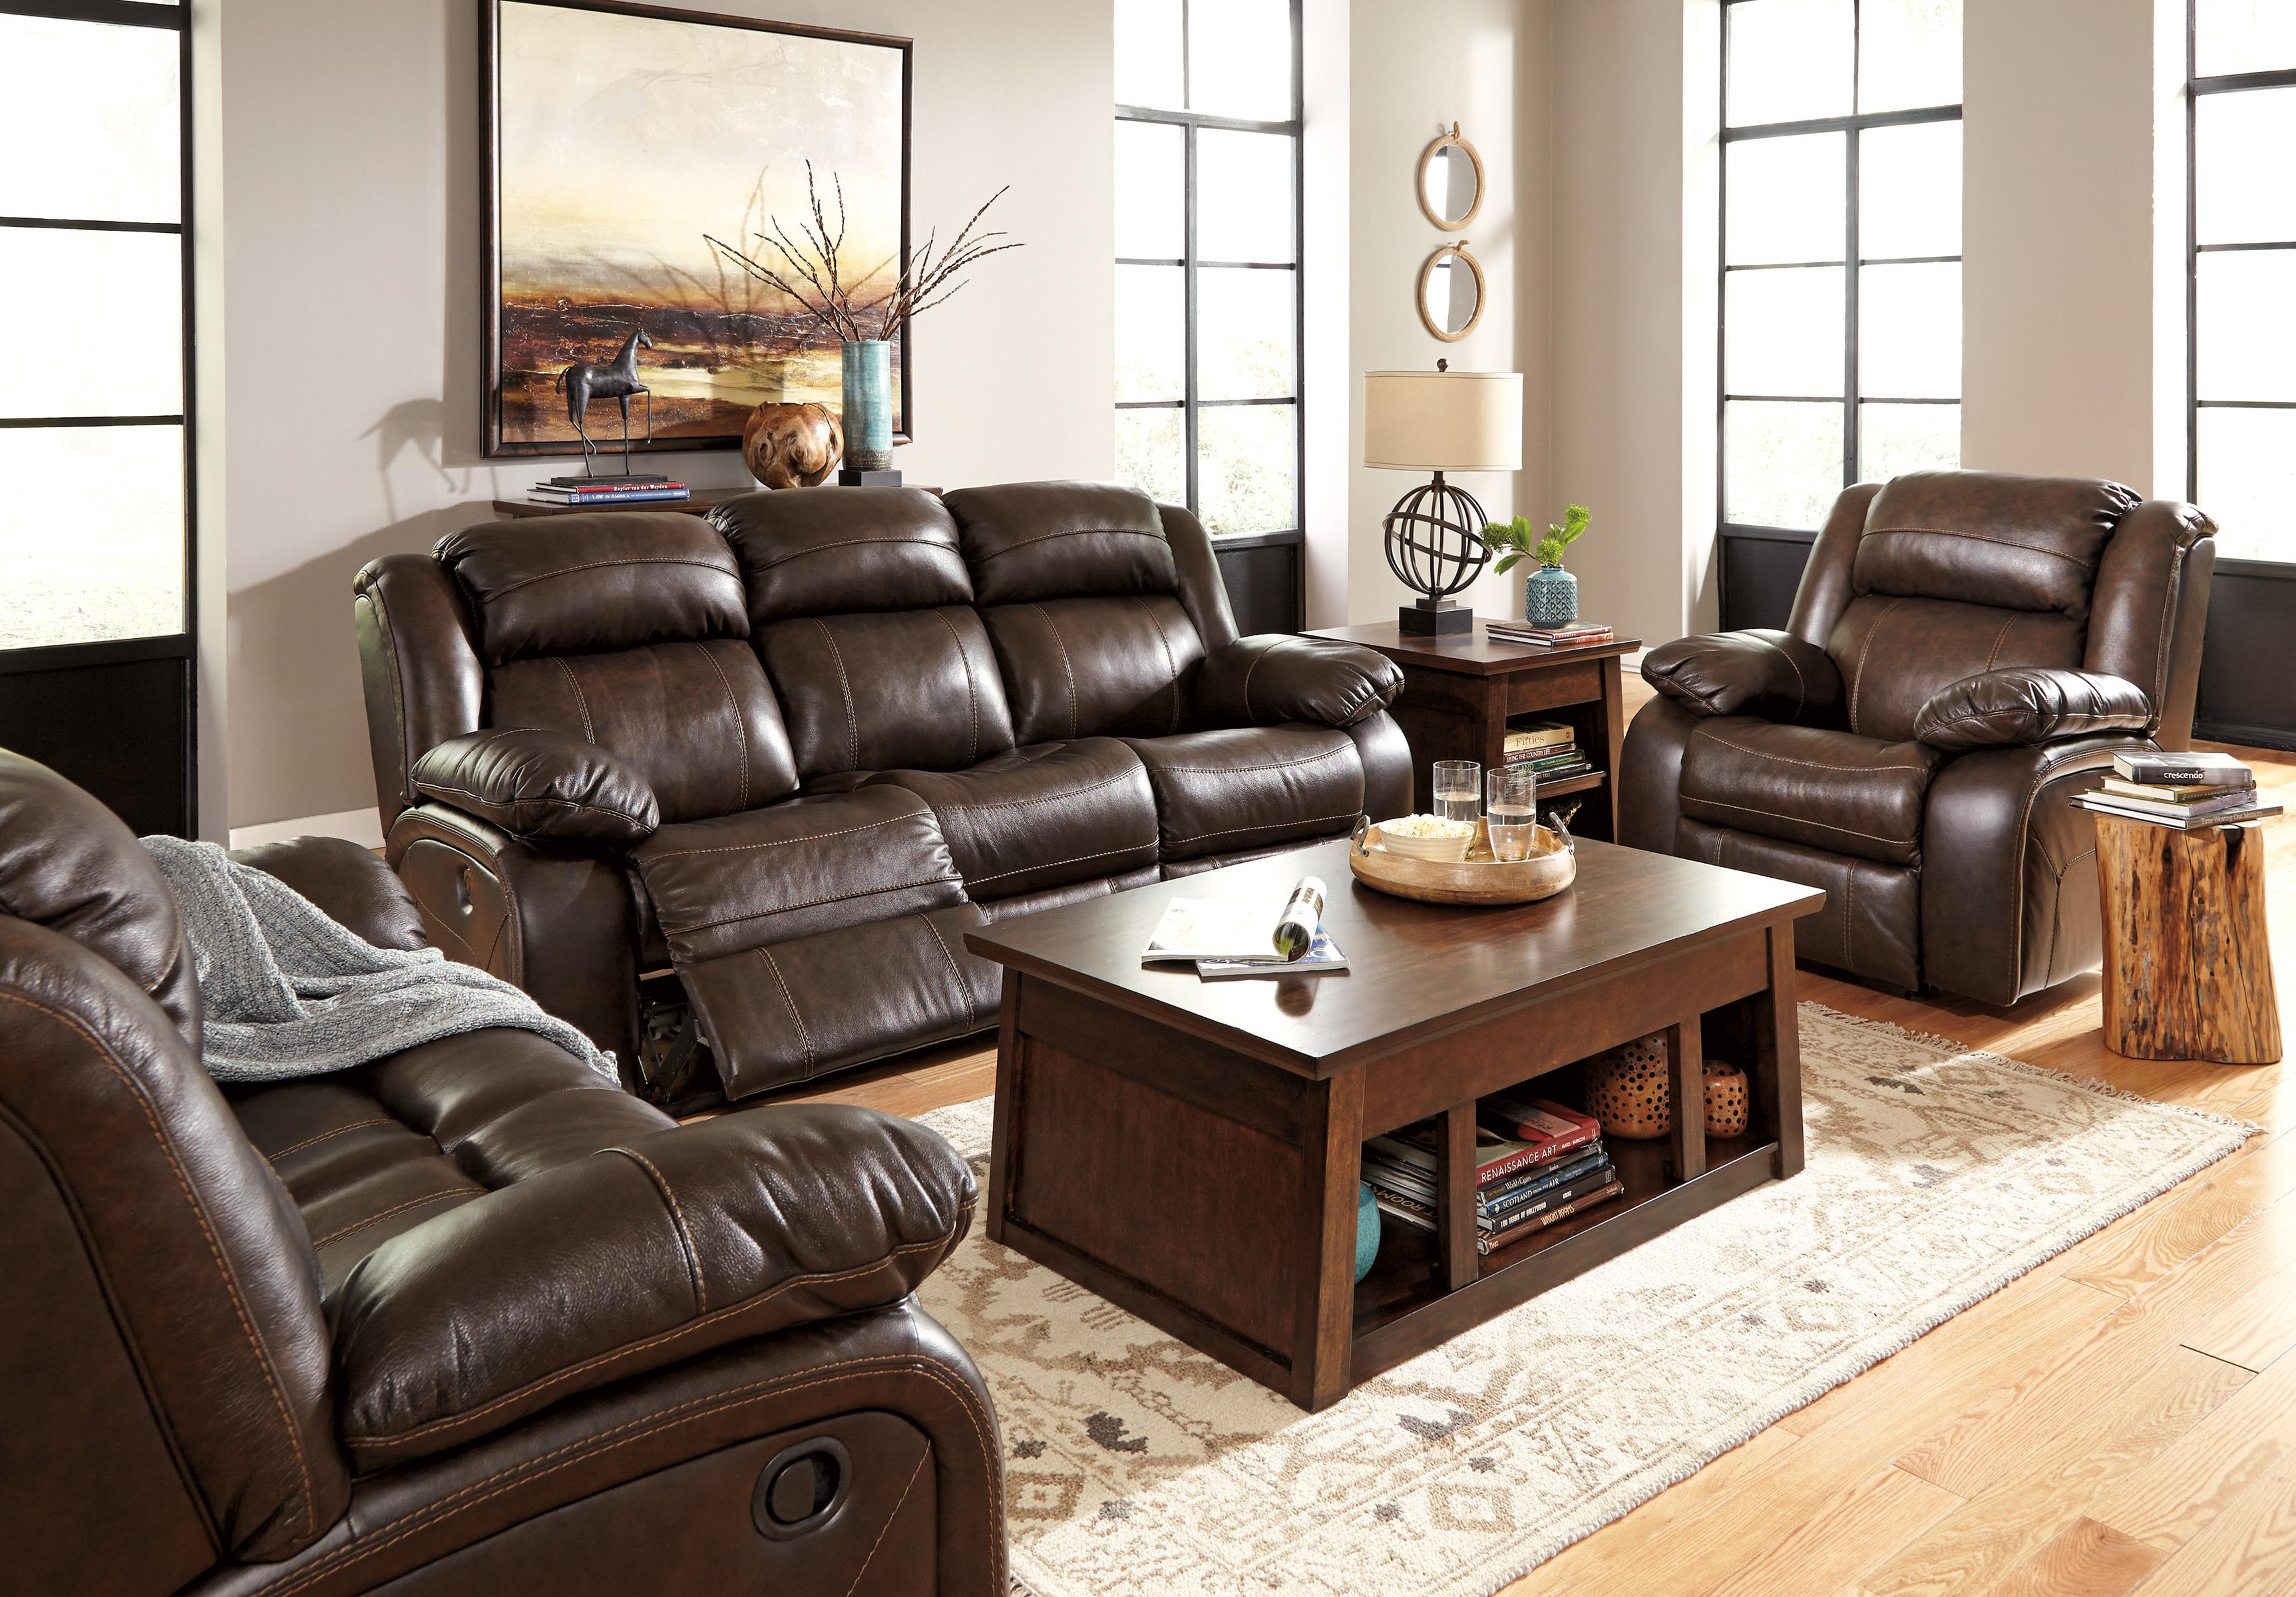 Signature Design by Ashley Branton Power Reclining Living Room Group - Item Number: U71901 Living Room Group 4